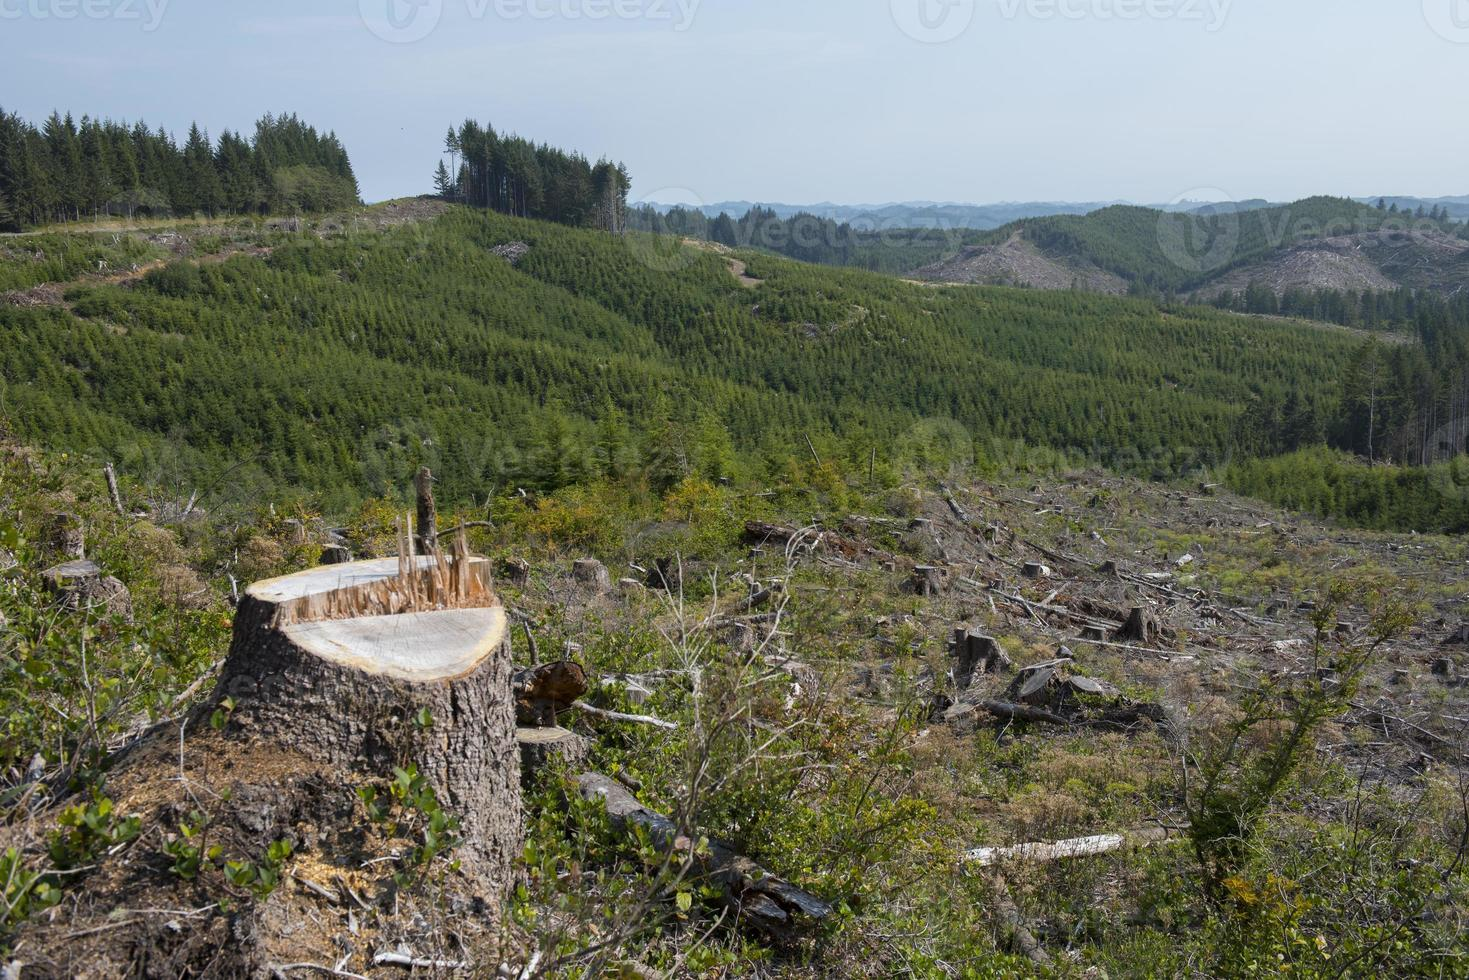 Clear cut forest, signs of reforestation photo